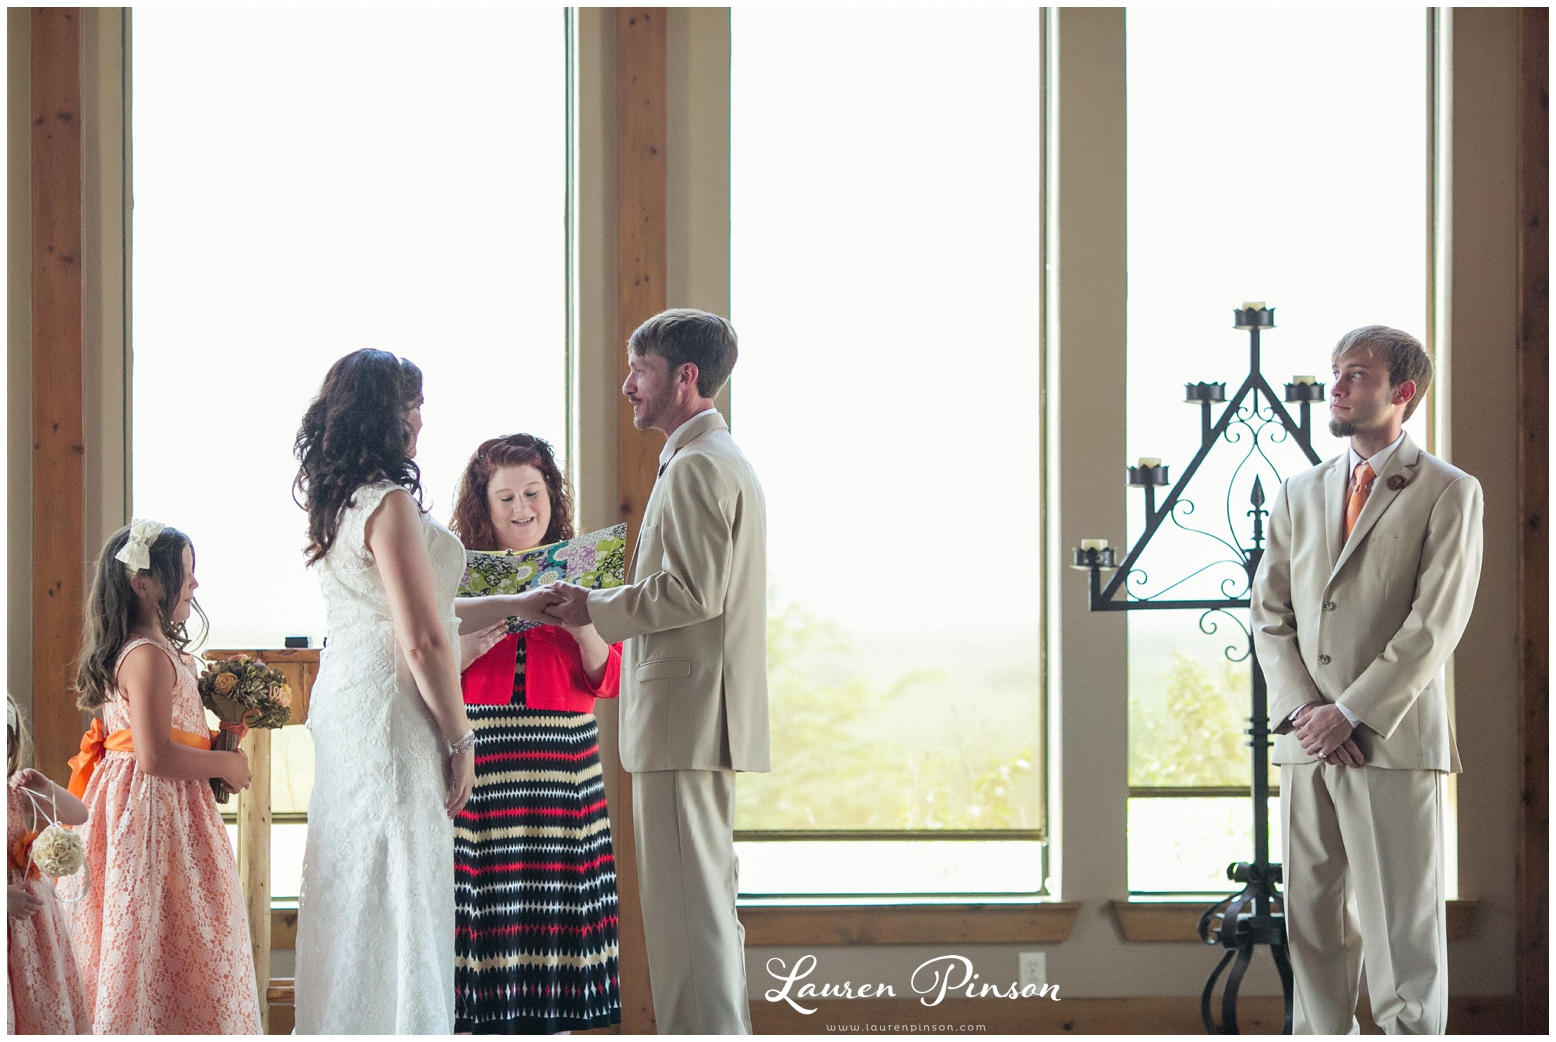 wichita-falls-coyote-ranch-resort-wedding-texas-photography-family-ceremony-balloons-rustic-lace_0330.jpg